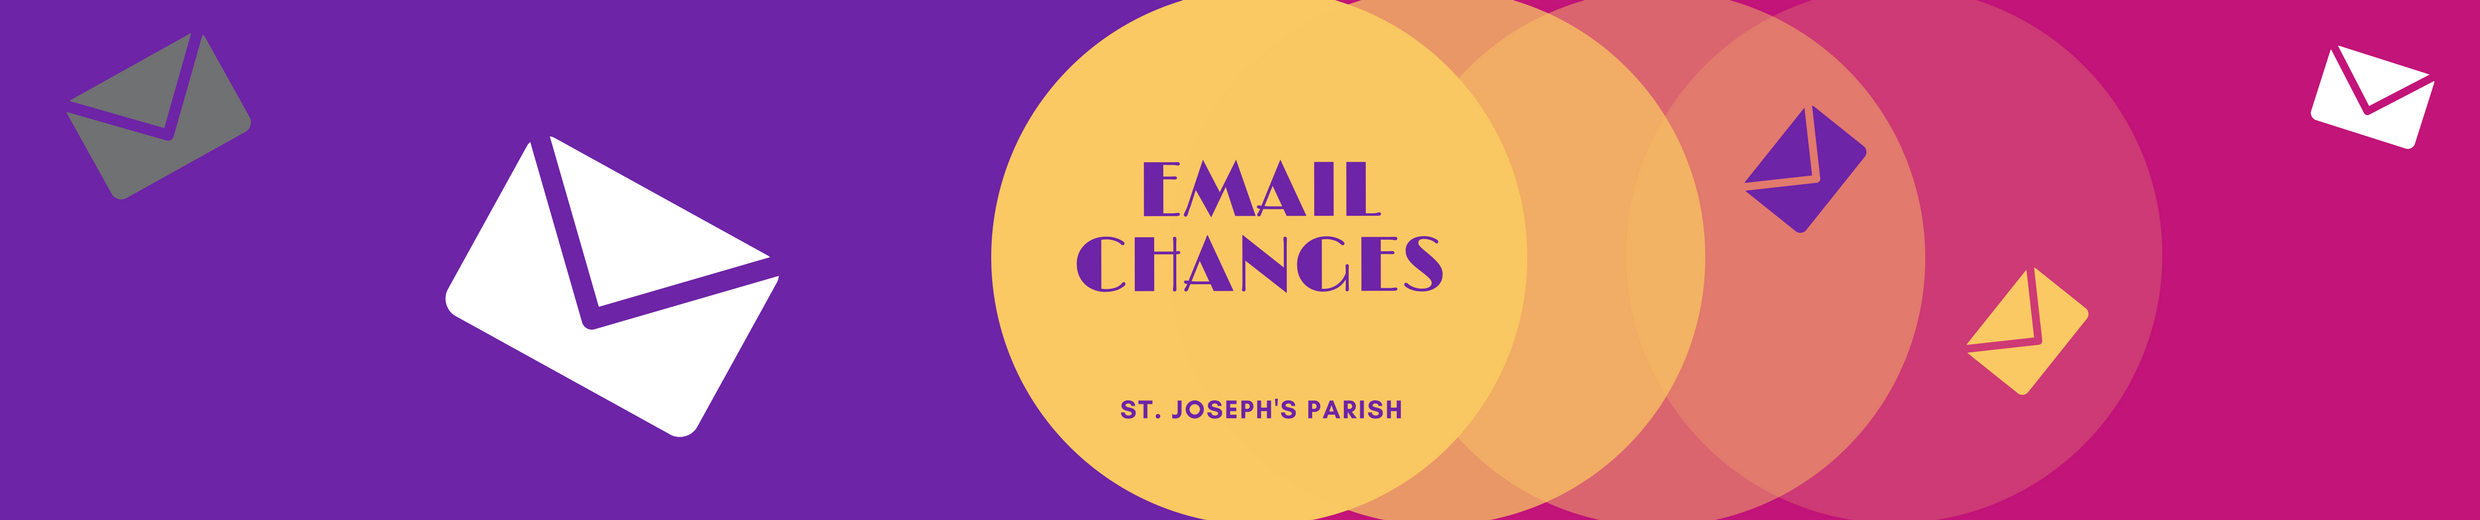 EmailContacts